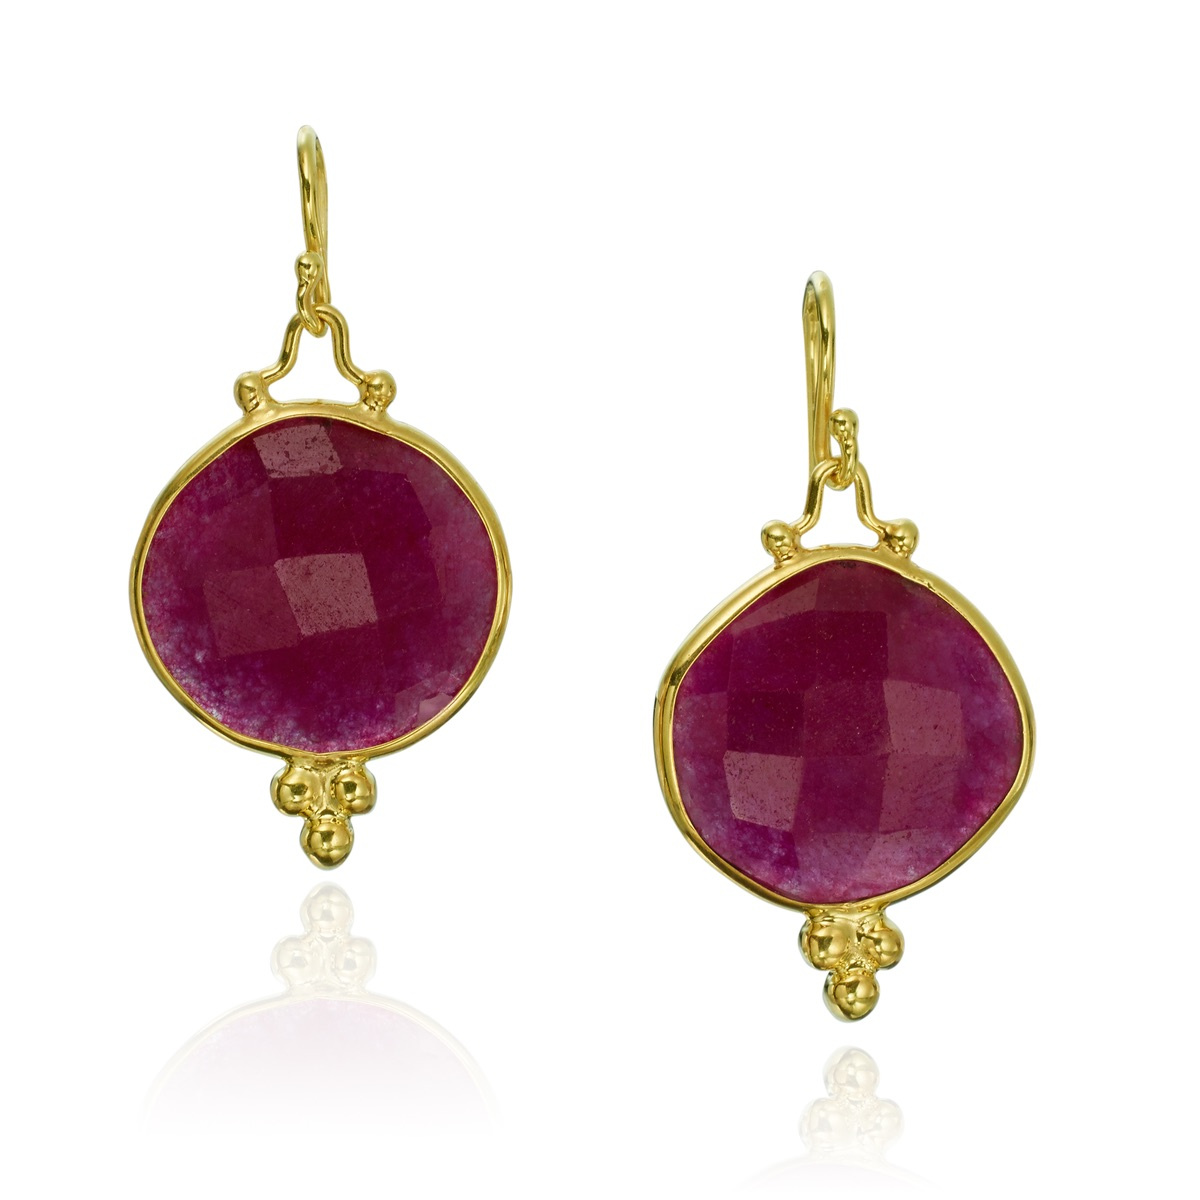 The Jewel - Mazza - Lookbook - Pink and Gold Drop Earrings